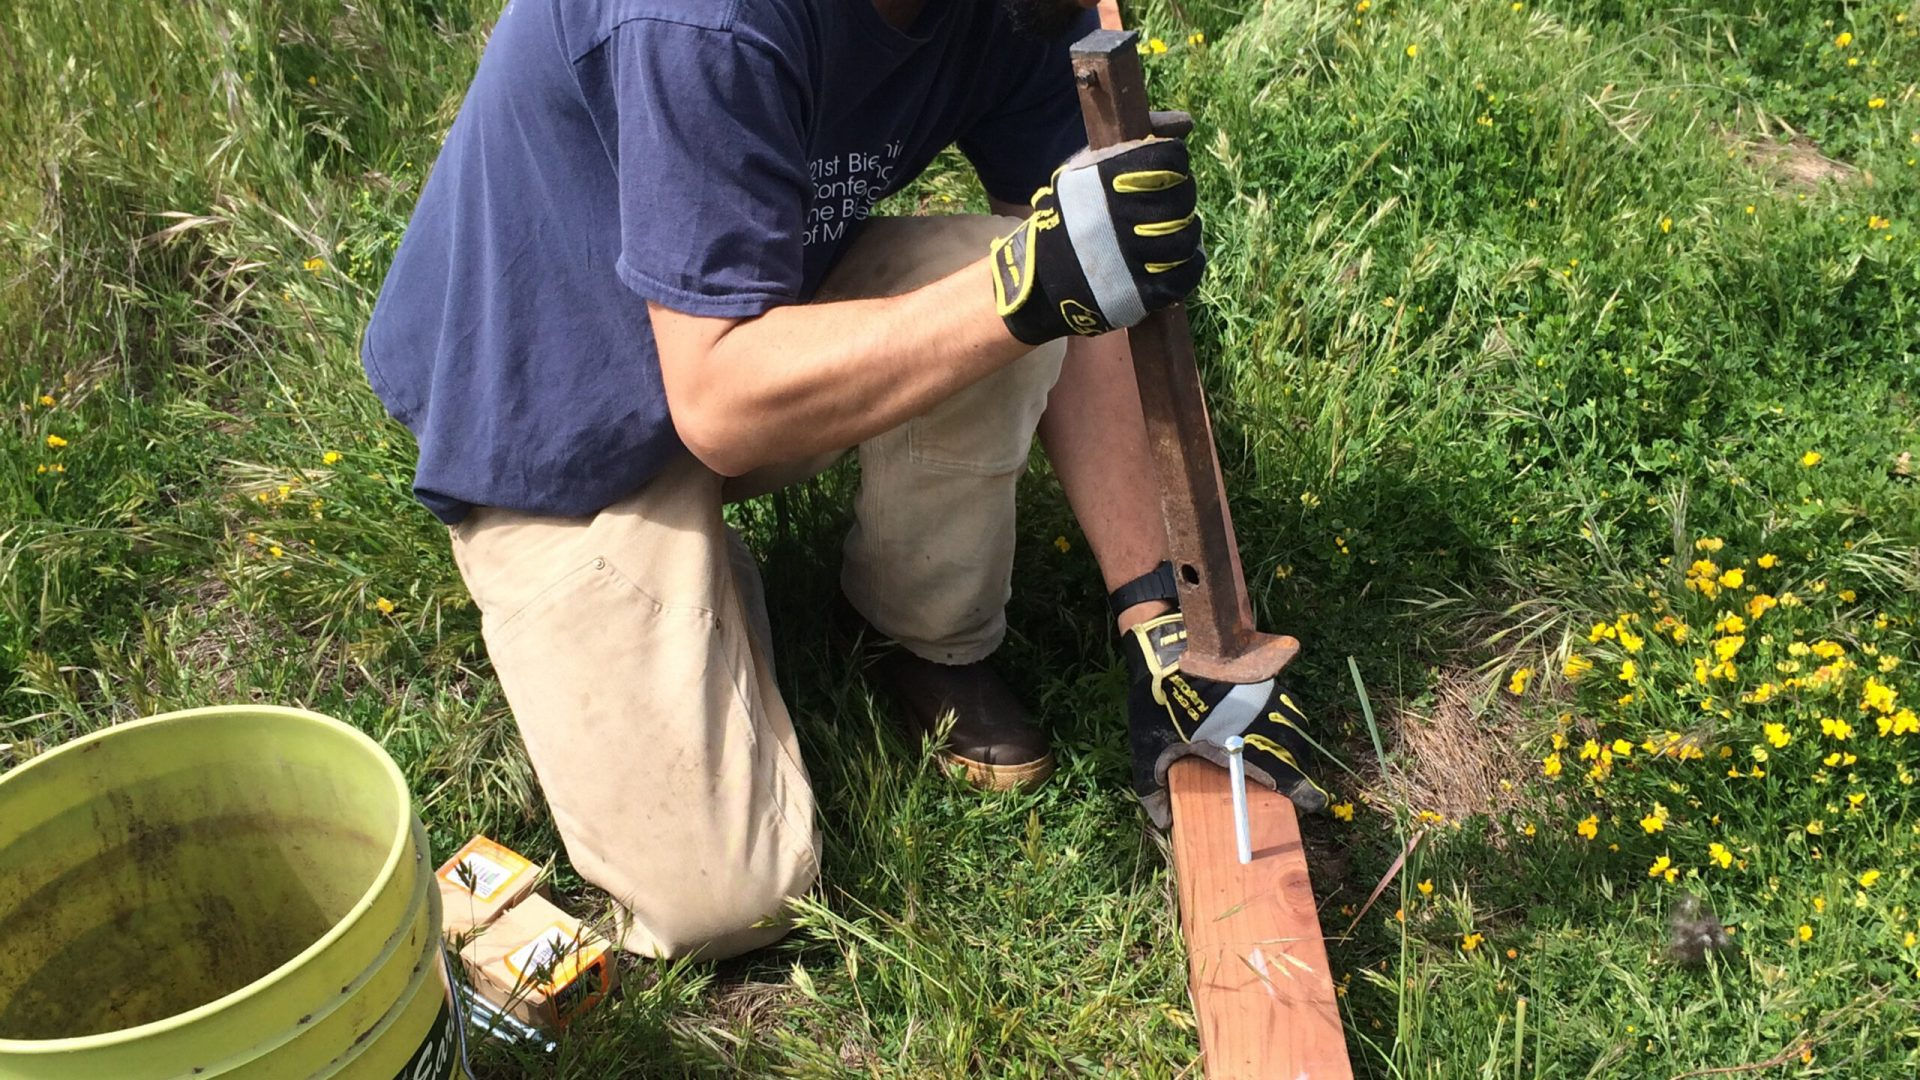 A CC&R crewmember constructs a raptor perch for rodent control at a restoration site.